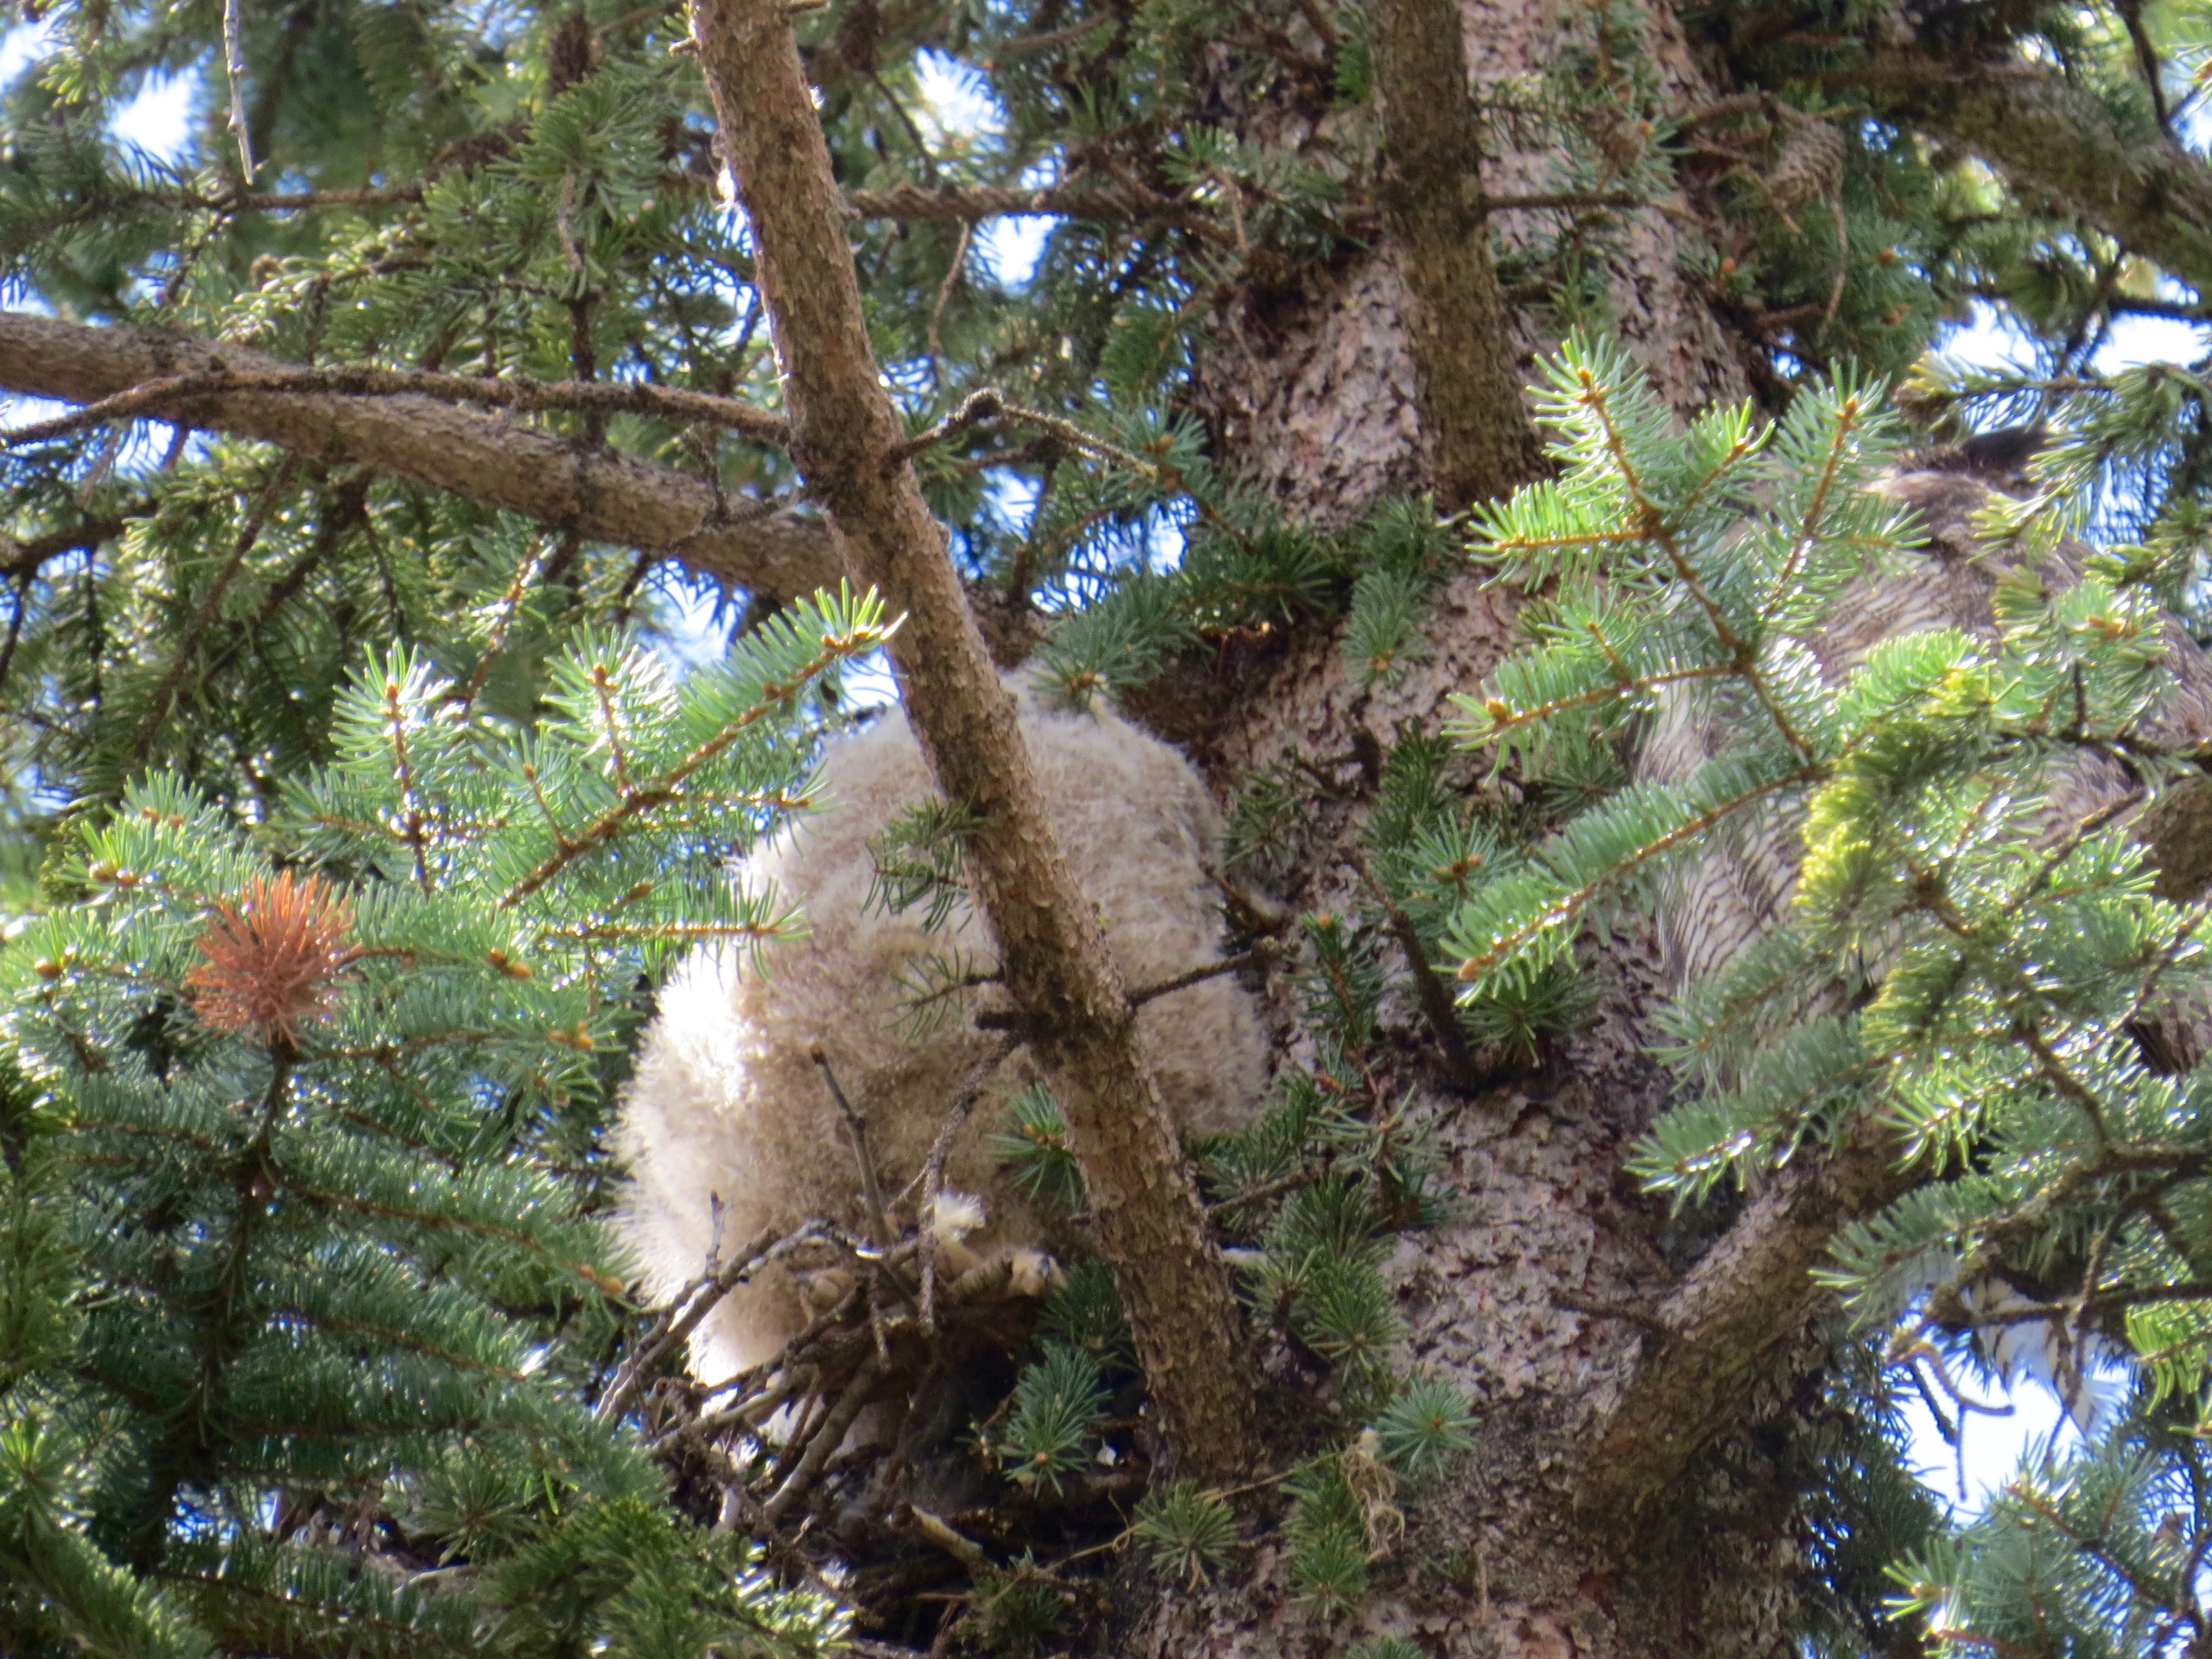 The Great Horned owlet, a bundle of white fluff, all snuggled up in the nest and taking a nap.